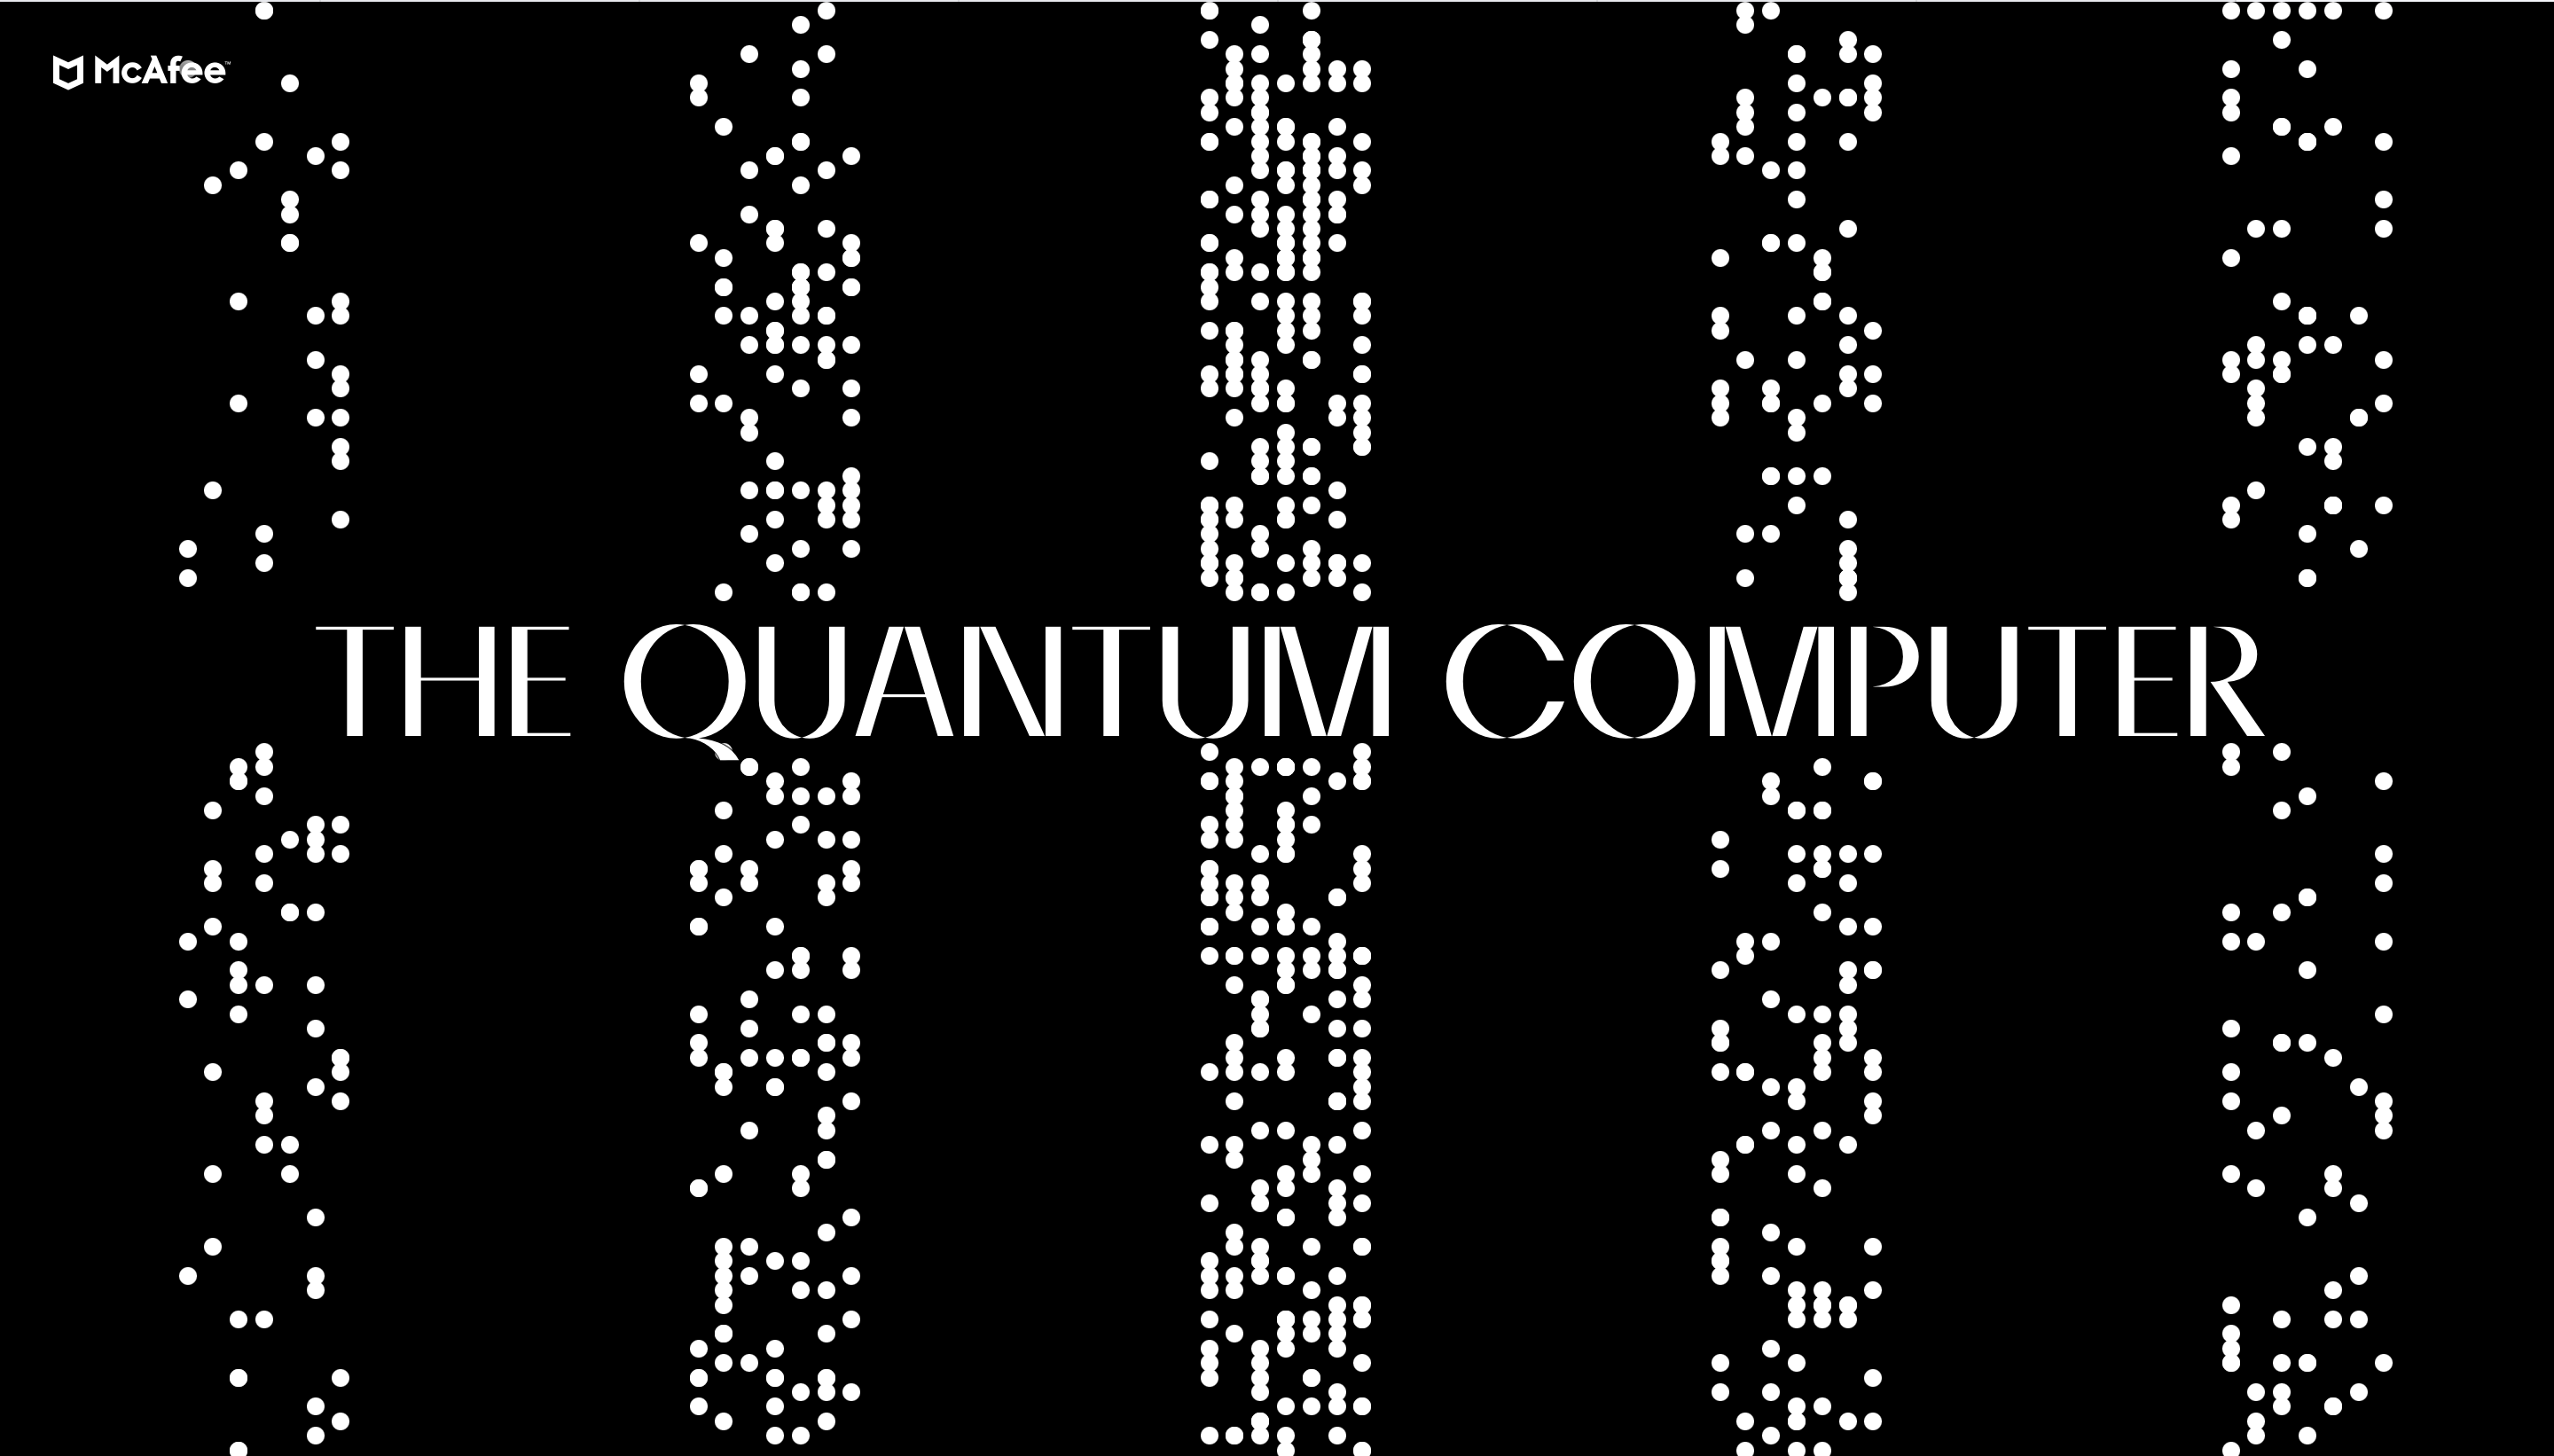 Cover image: The Quantum Computer